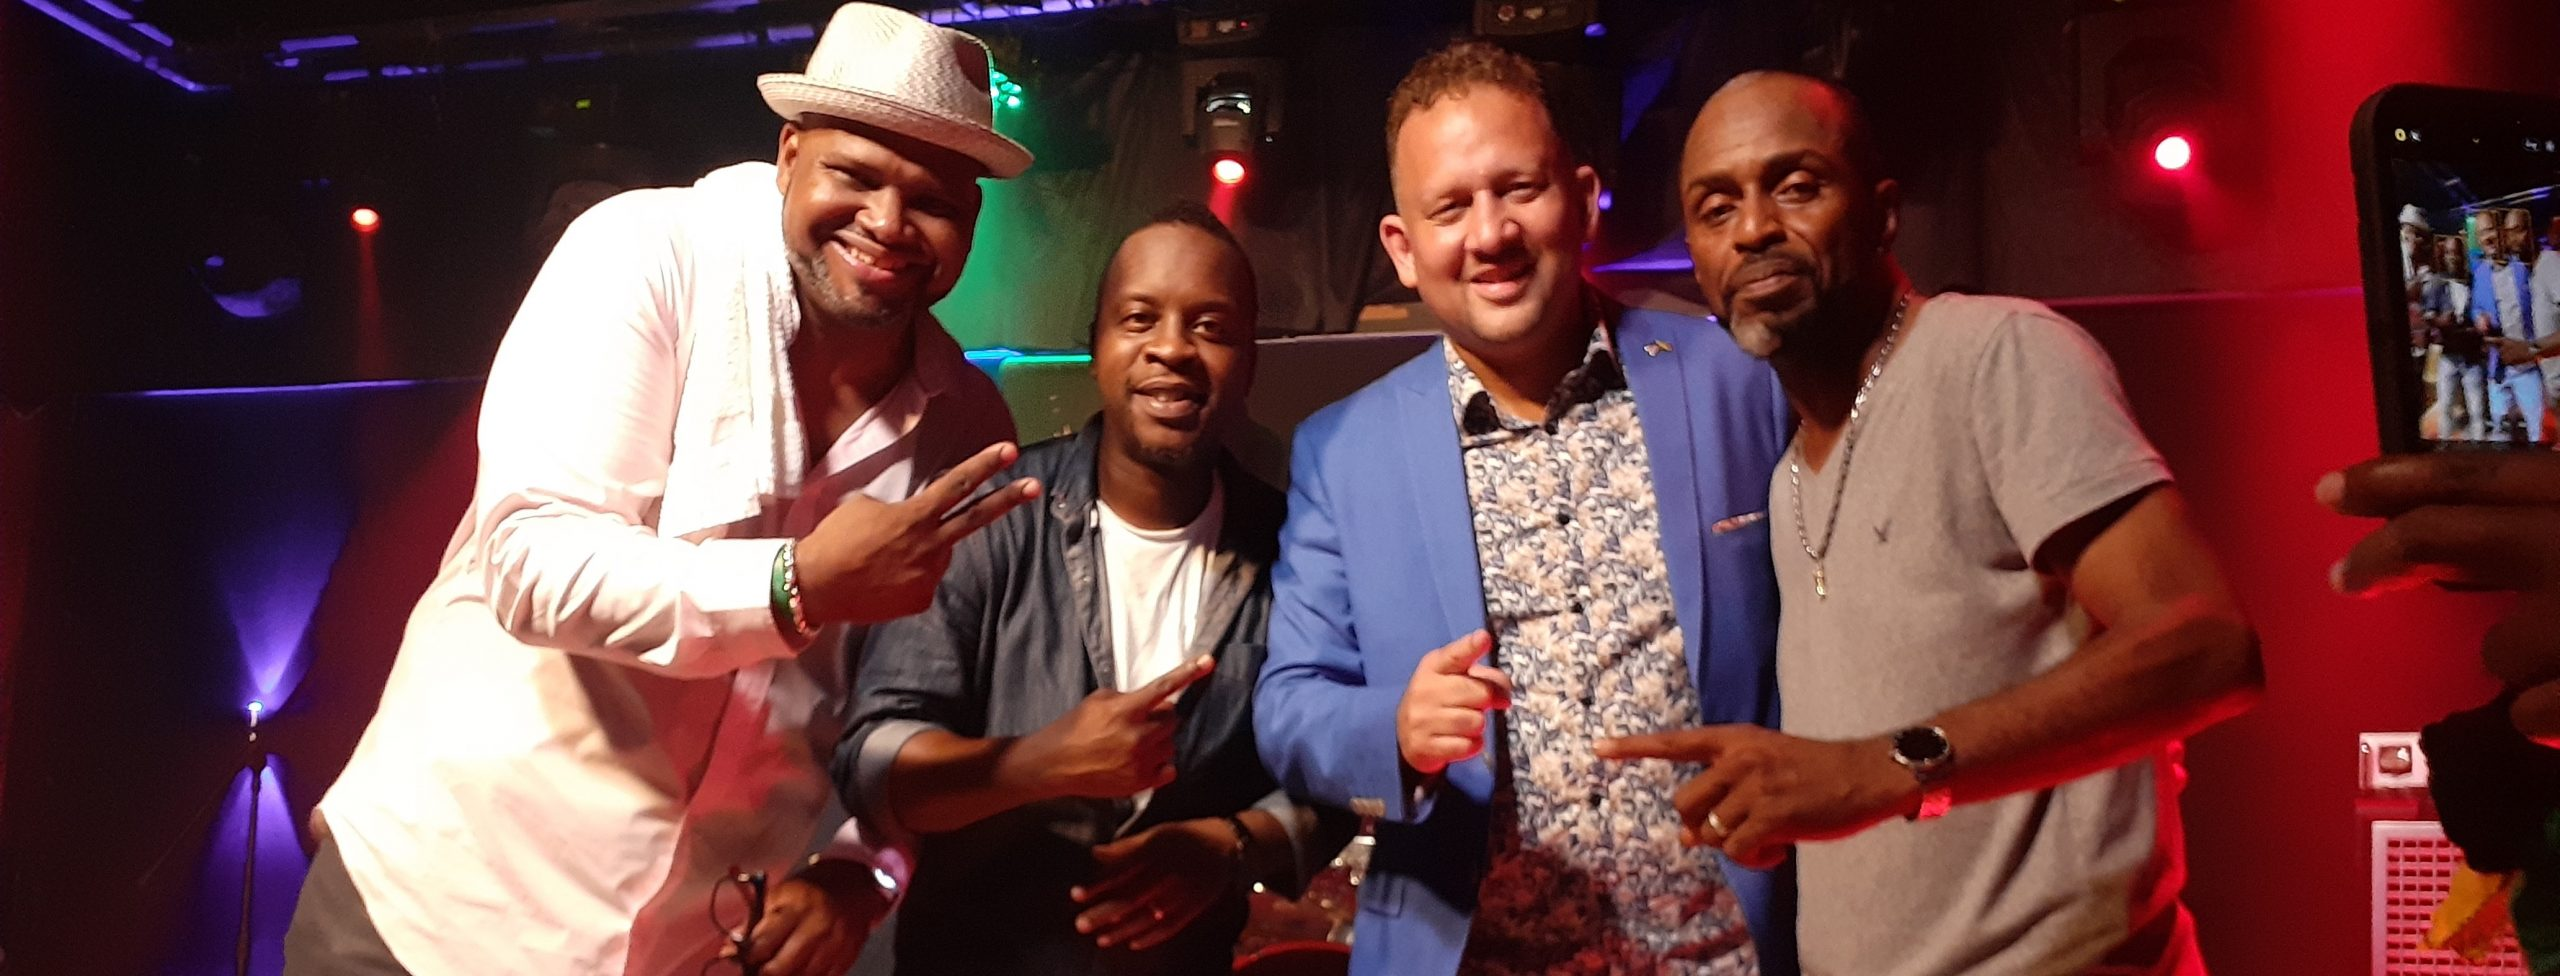 Jamaican Bad Boys of Comedy Deliver Good Laughs at The Garden